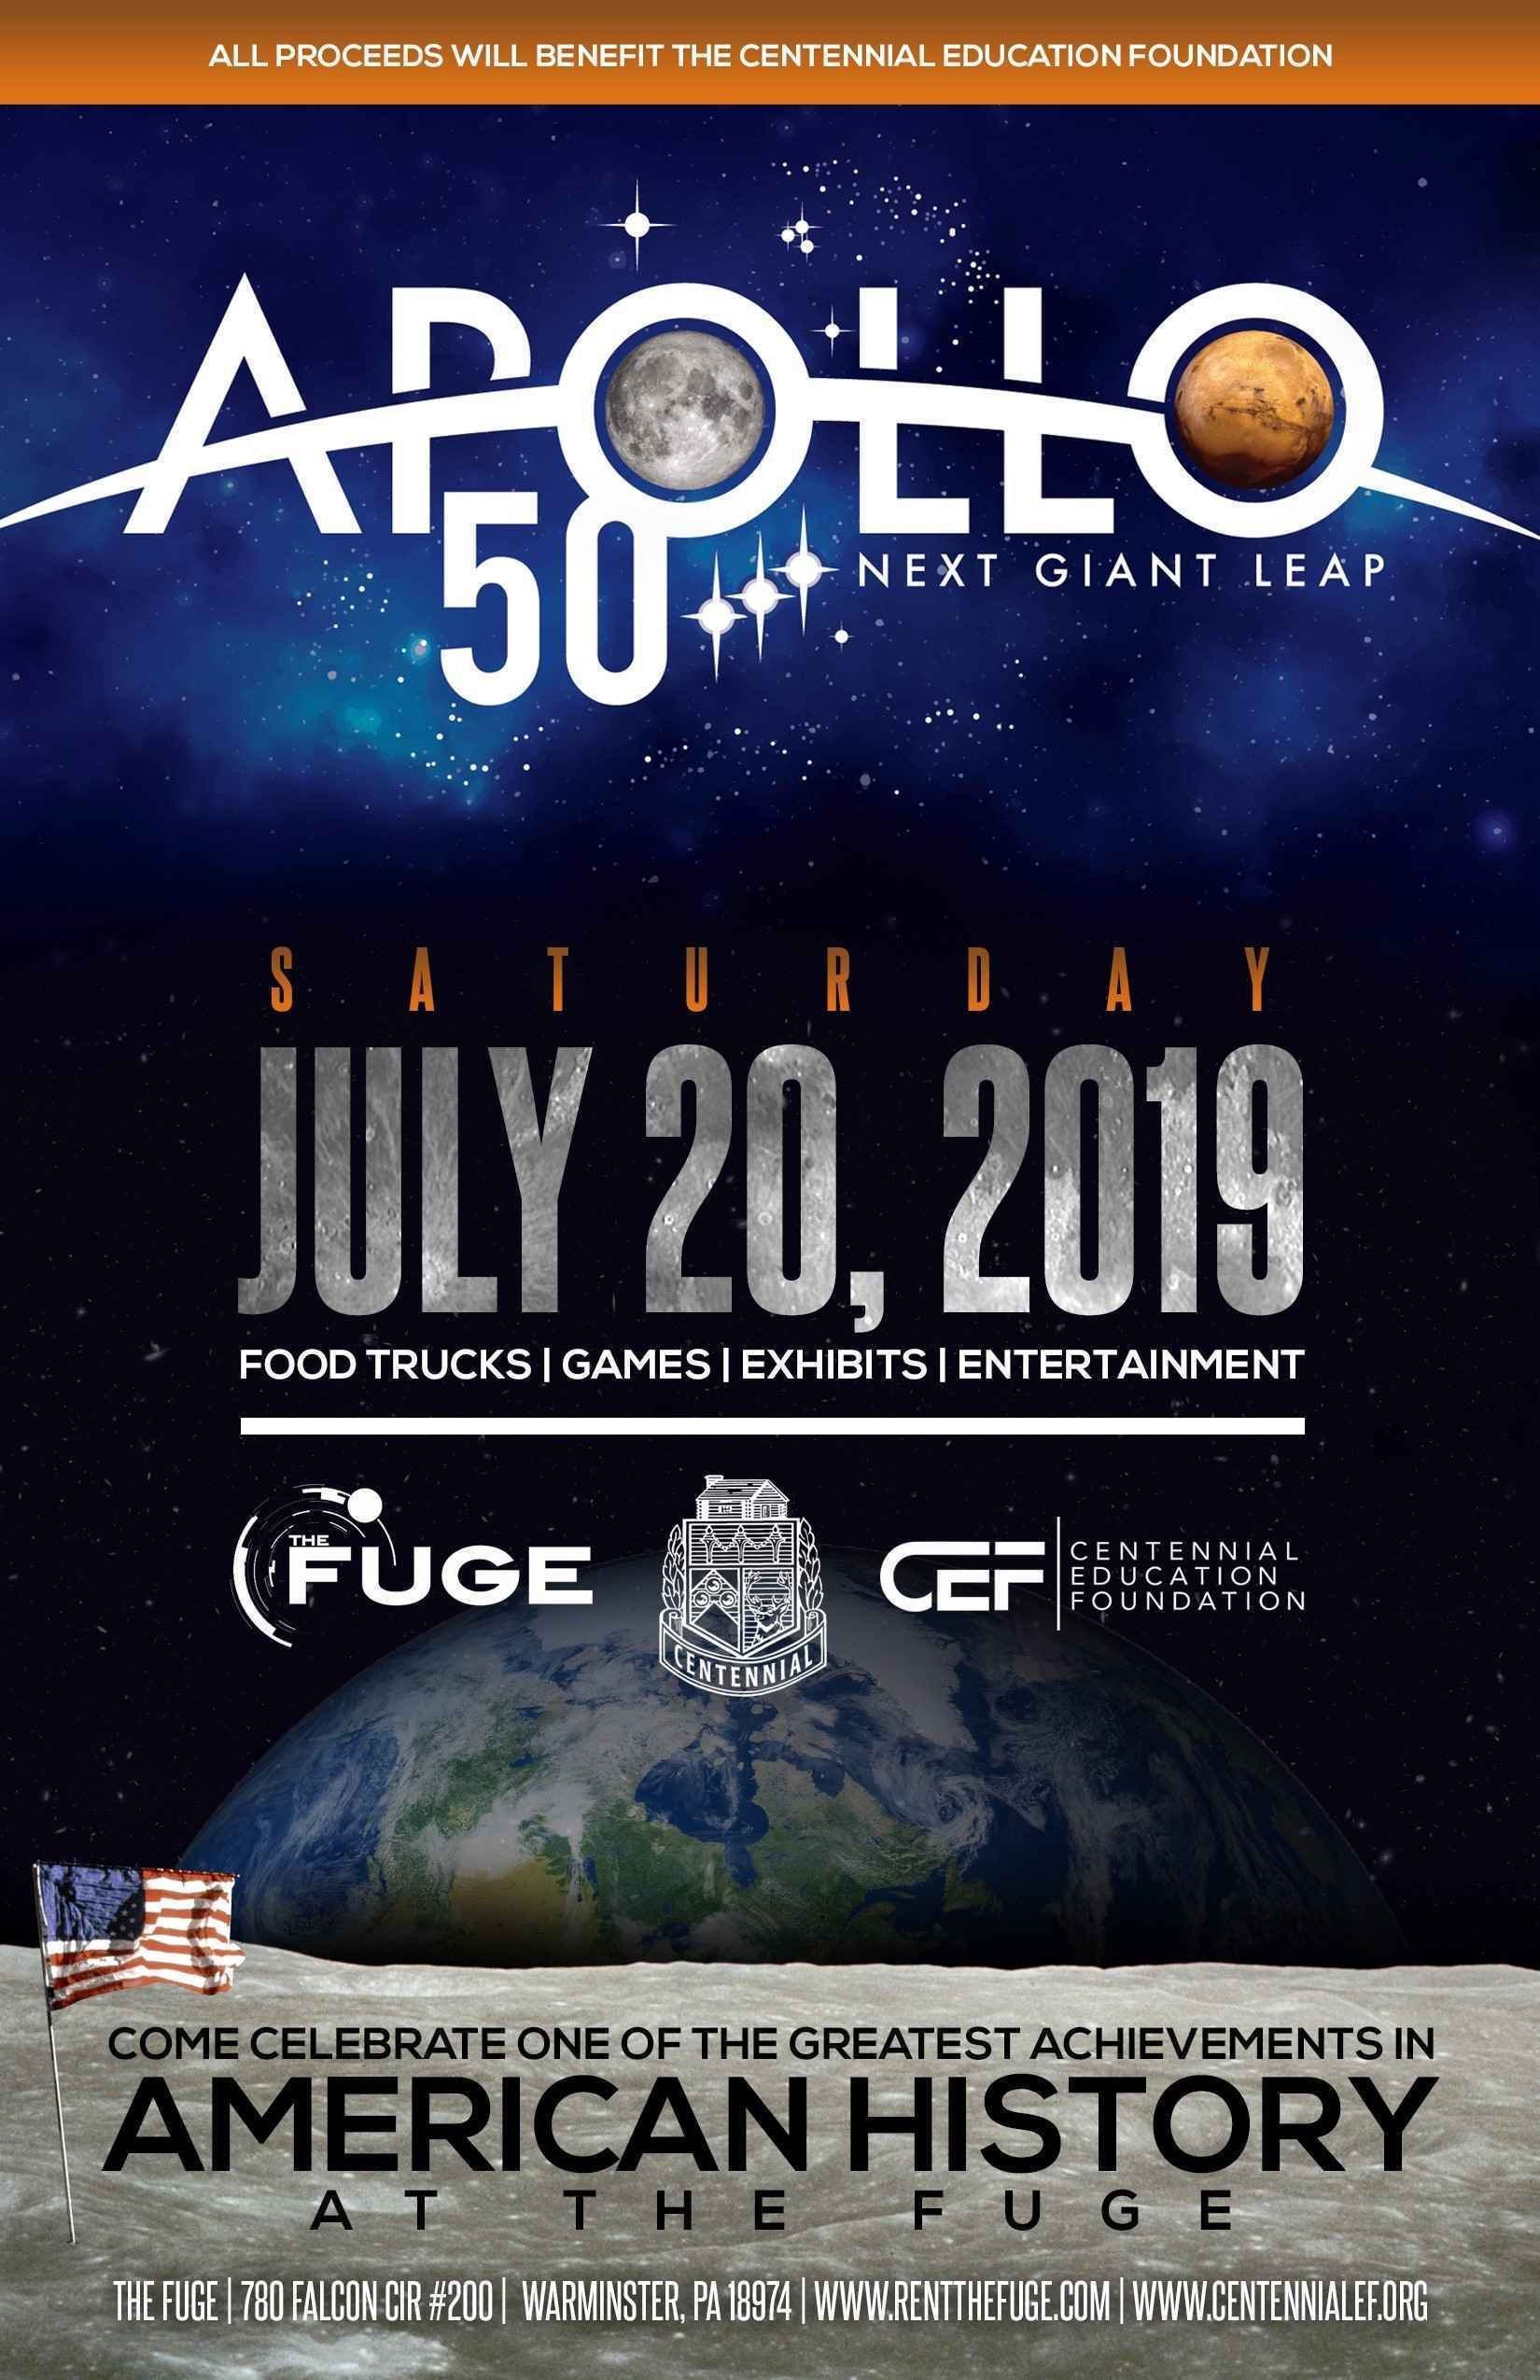 July 20th Apollo 11 Fuge Event - The Next Giant Leap image